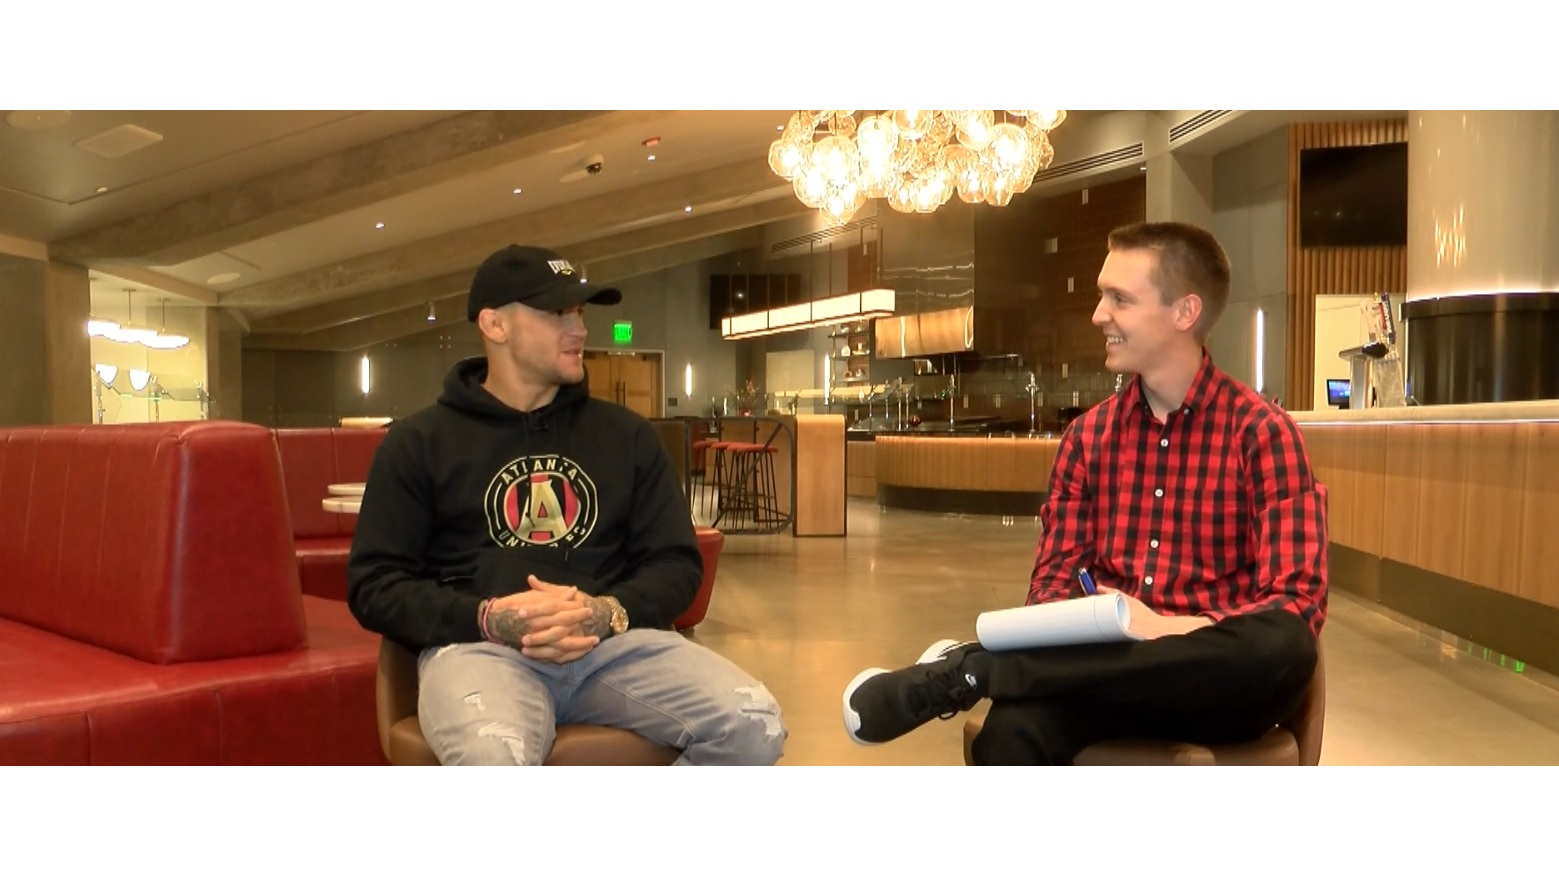 One-on-one interview with UFC fighter Dustin Poirier